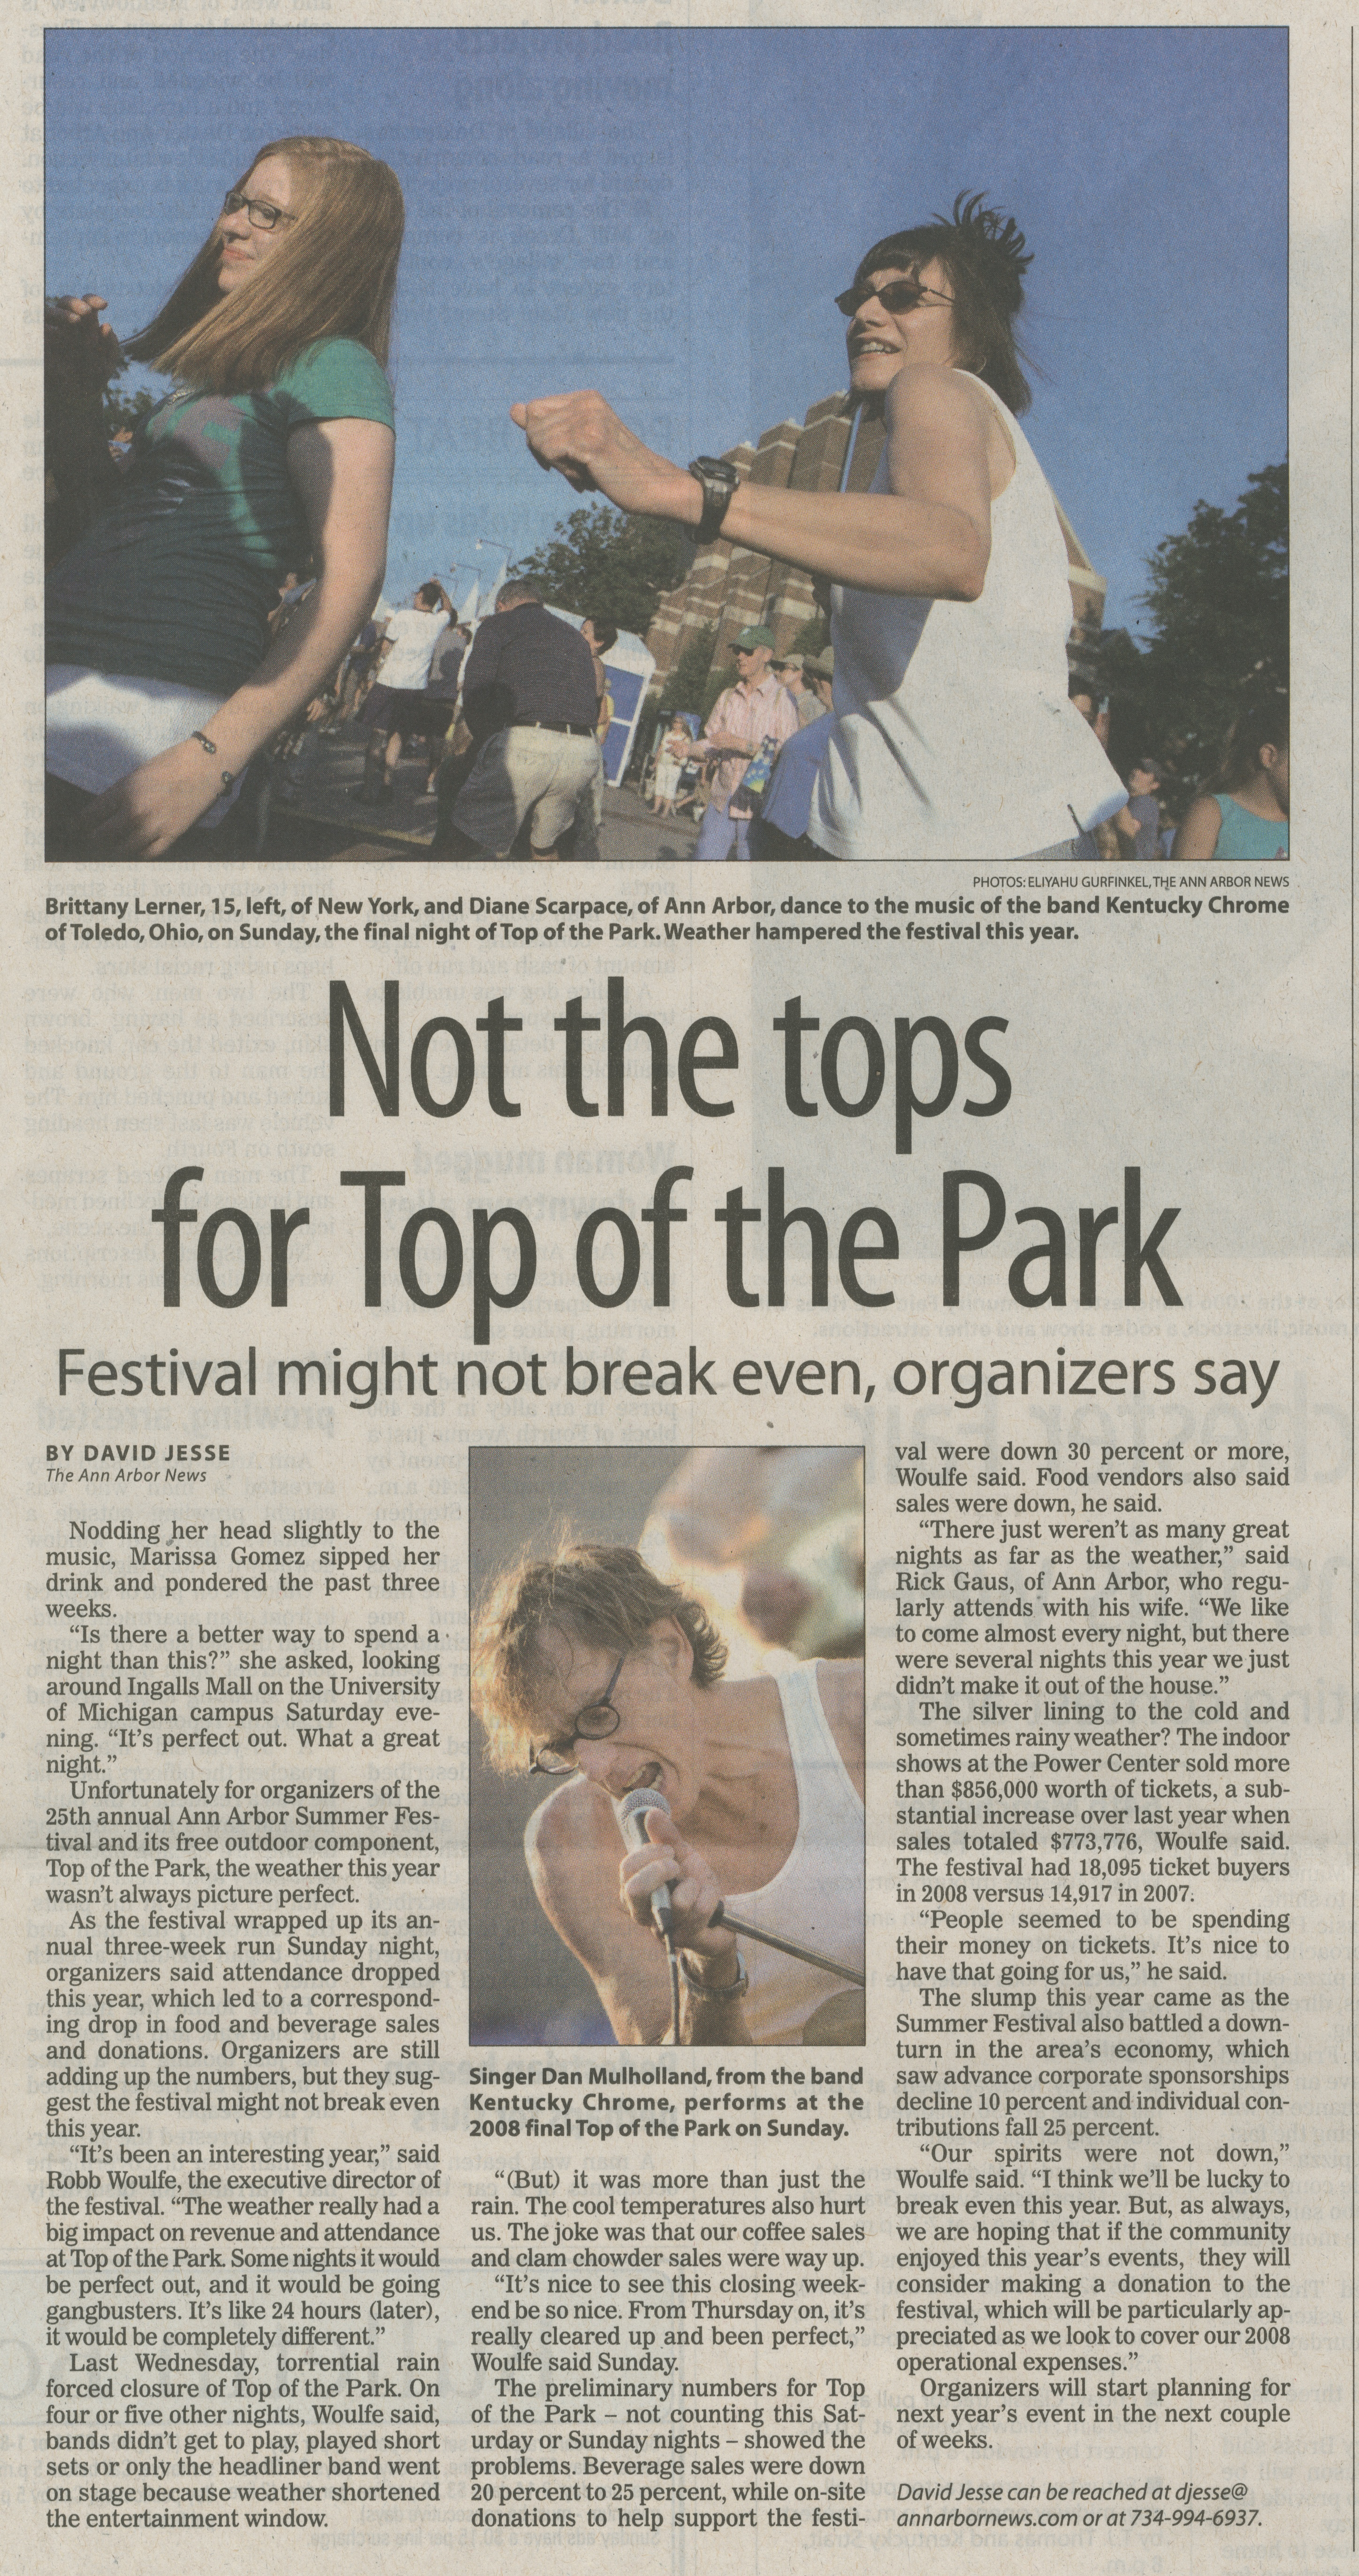 Not the tops for Top of the Park image